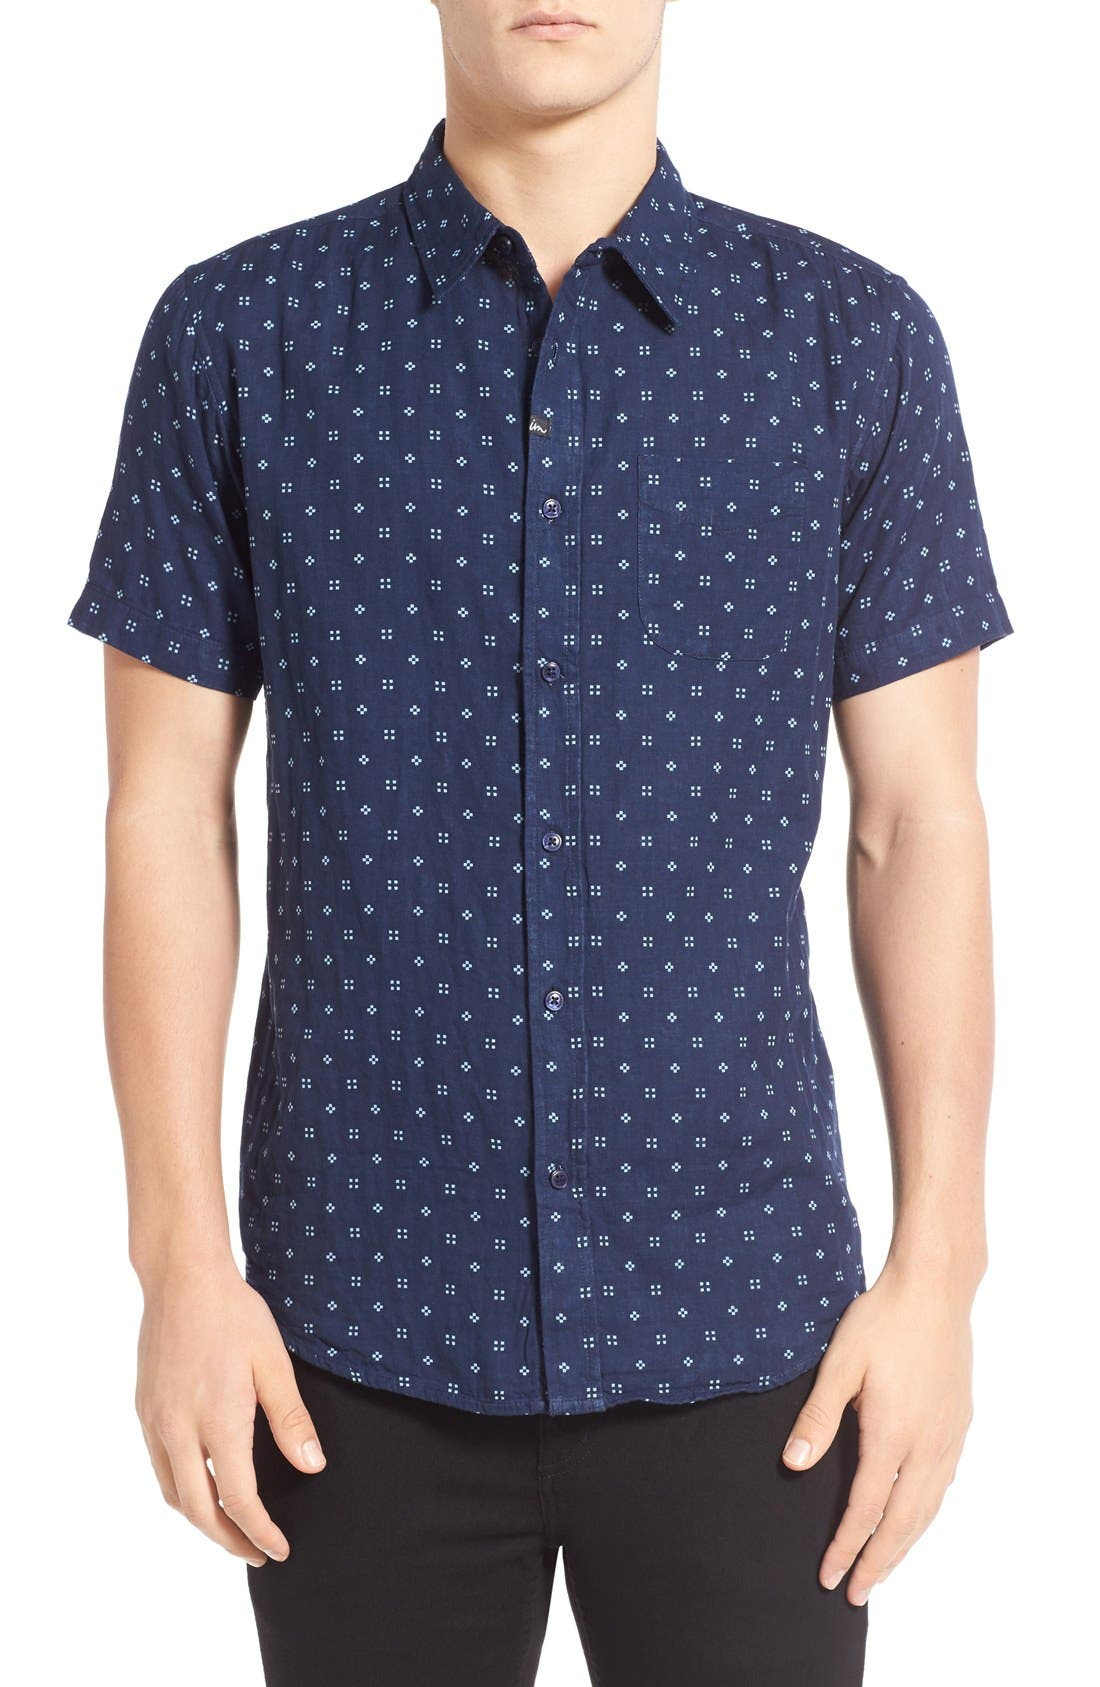 Imperial Motion 'Doubles' Print Short Sleeve Woven Shirt